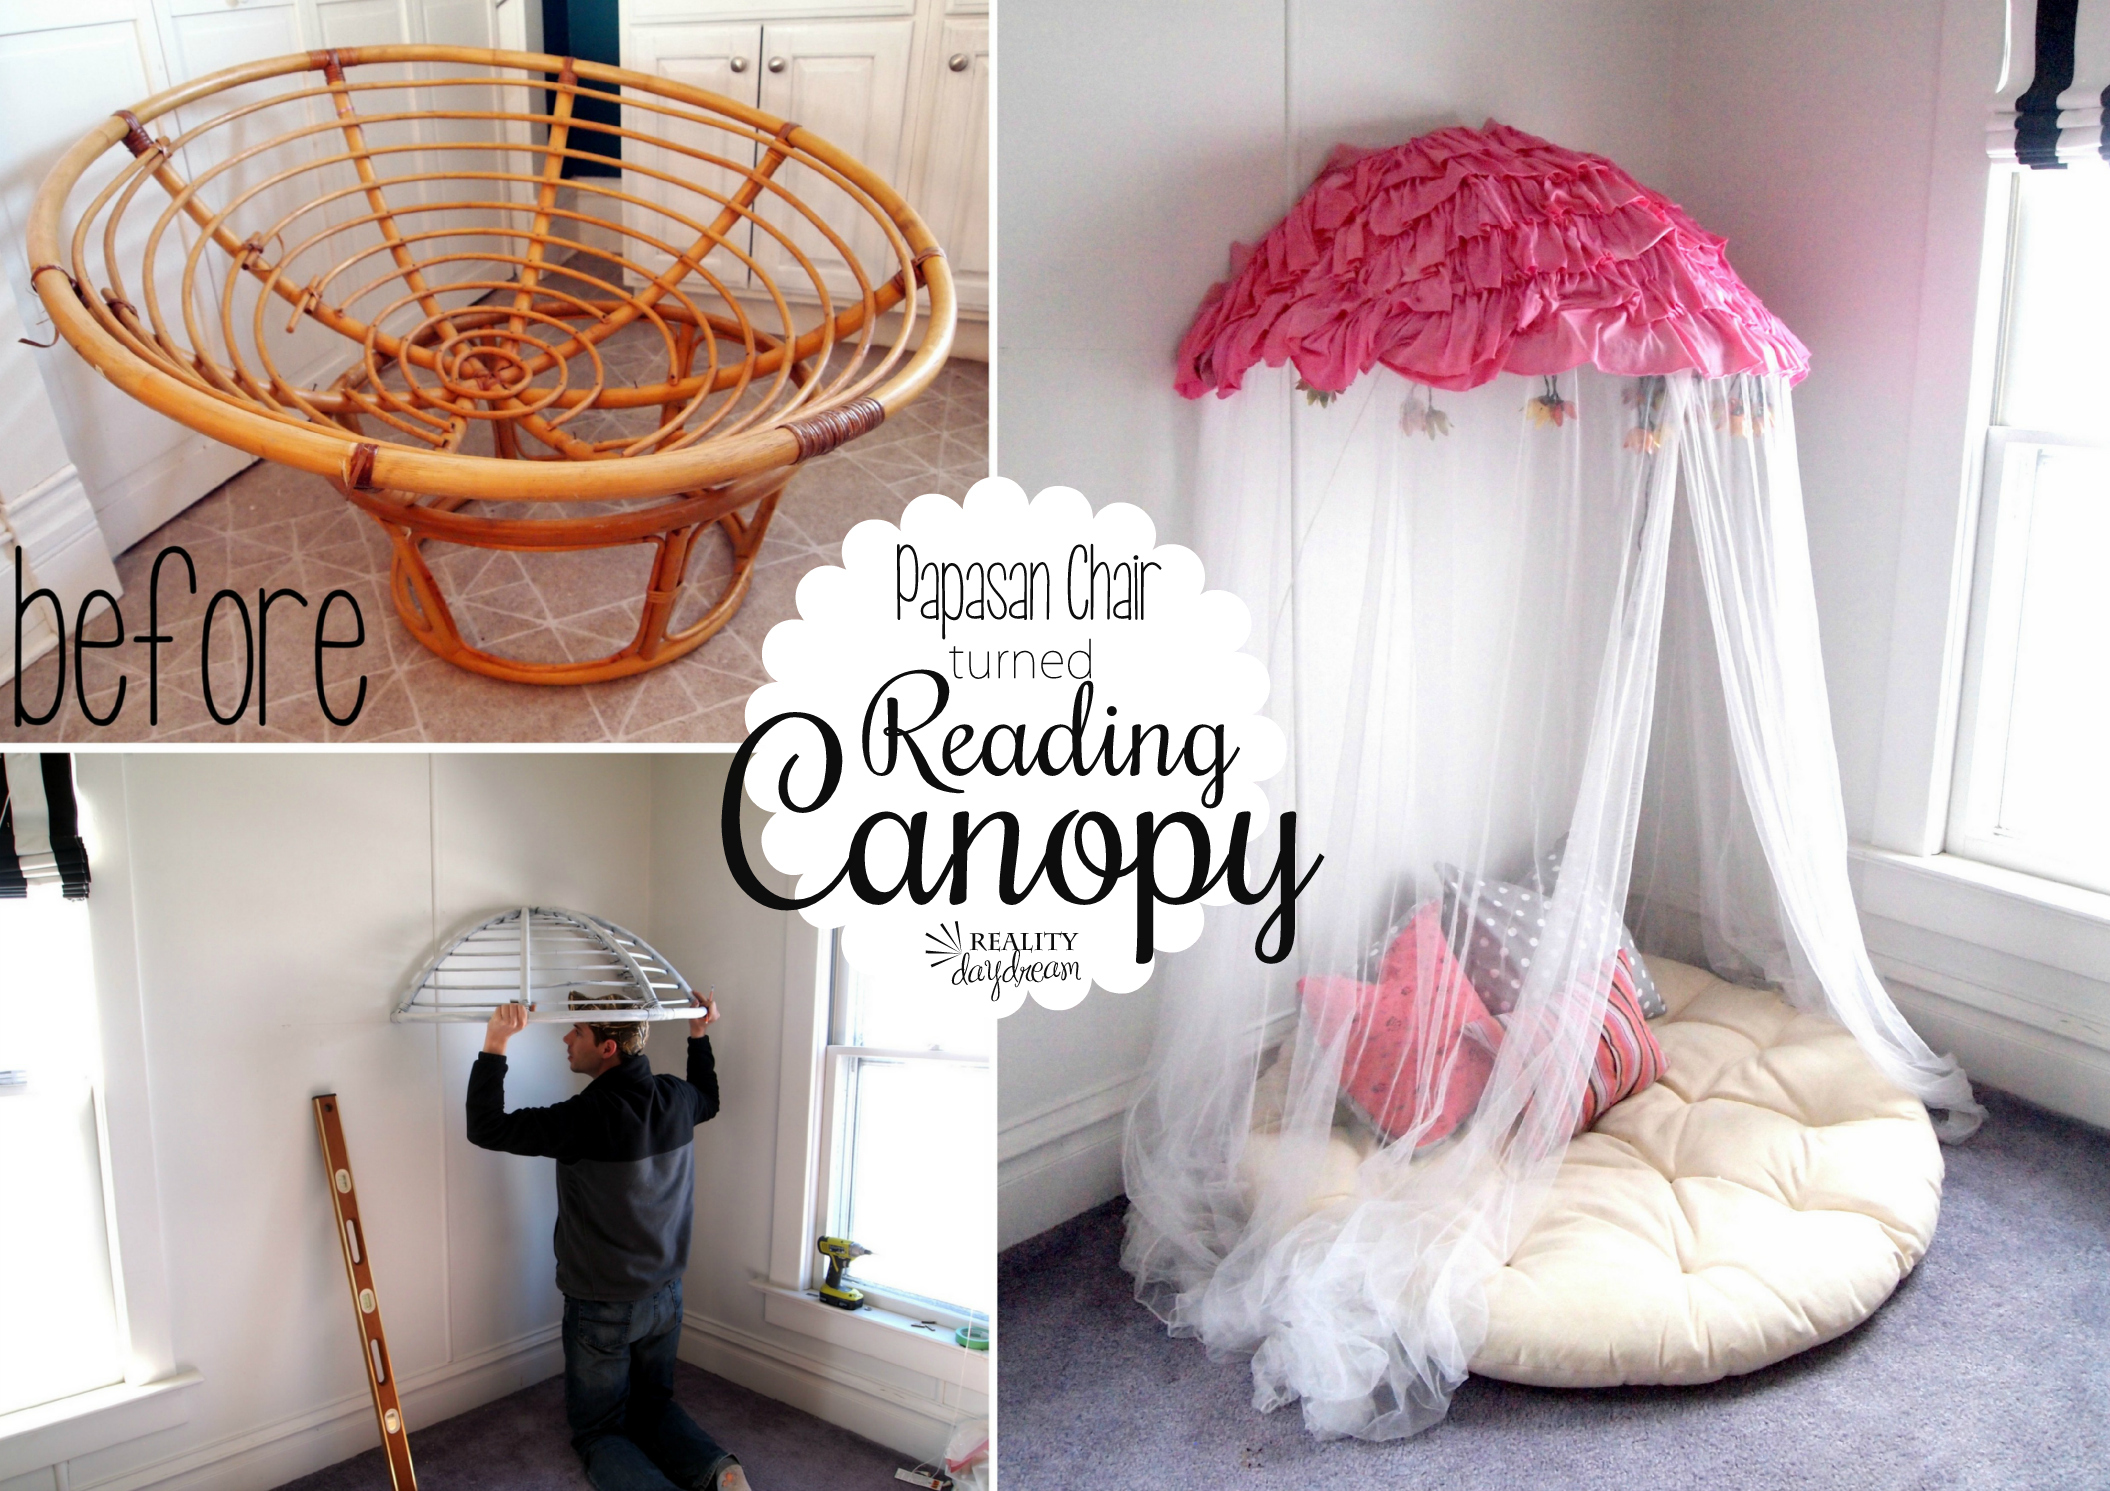 Old Papasan turned Canopy / Reading Nook & Old Papasan turned into a Papasan Canopy Reading Nook!